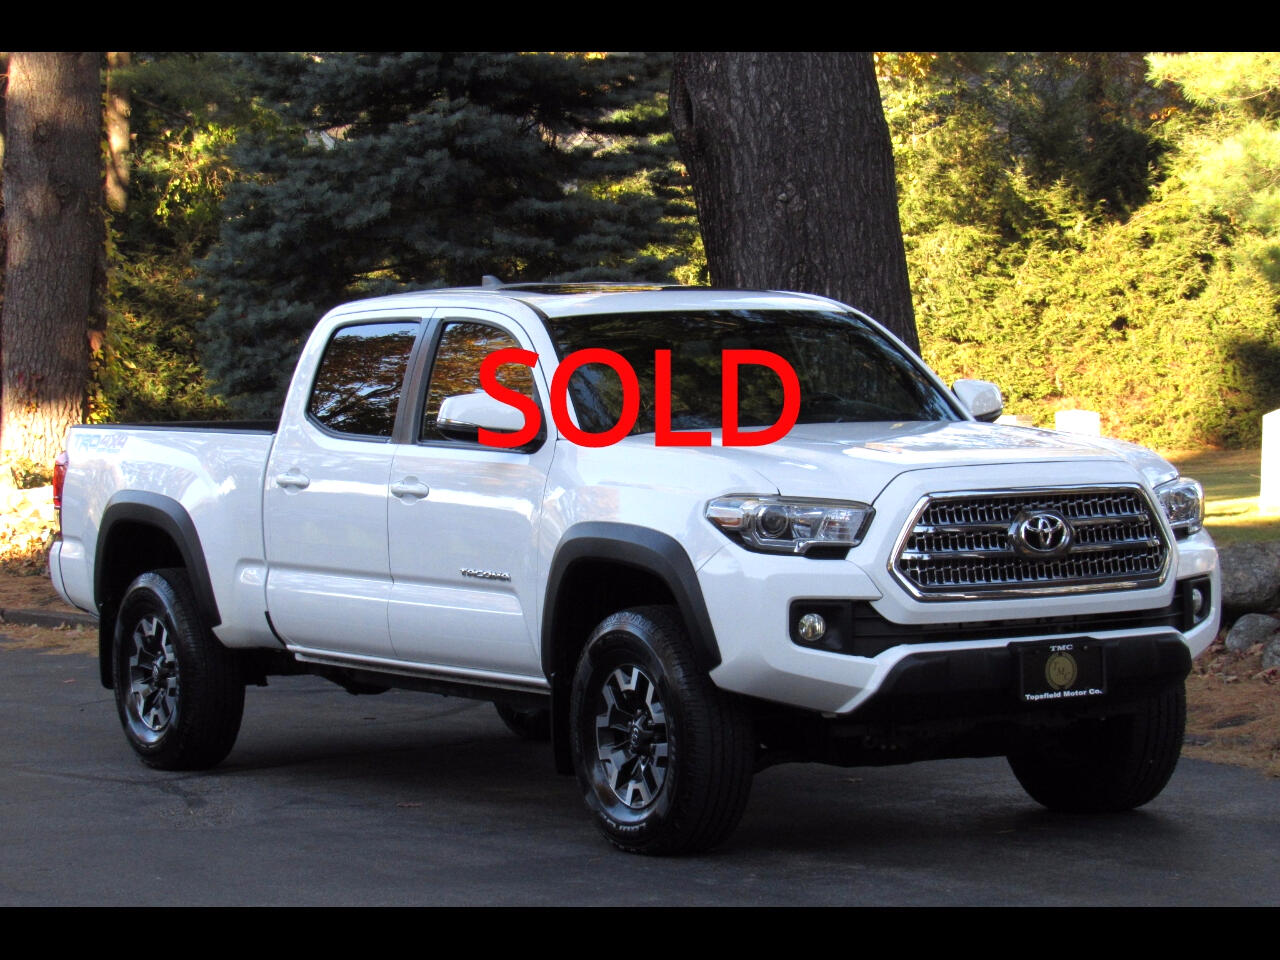 2016 Toyota Tacoma SR5 TRD OFF-ROAD 4X4 DOUBLE CAB LONG BED